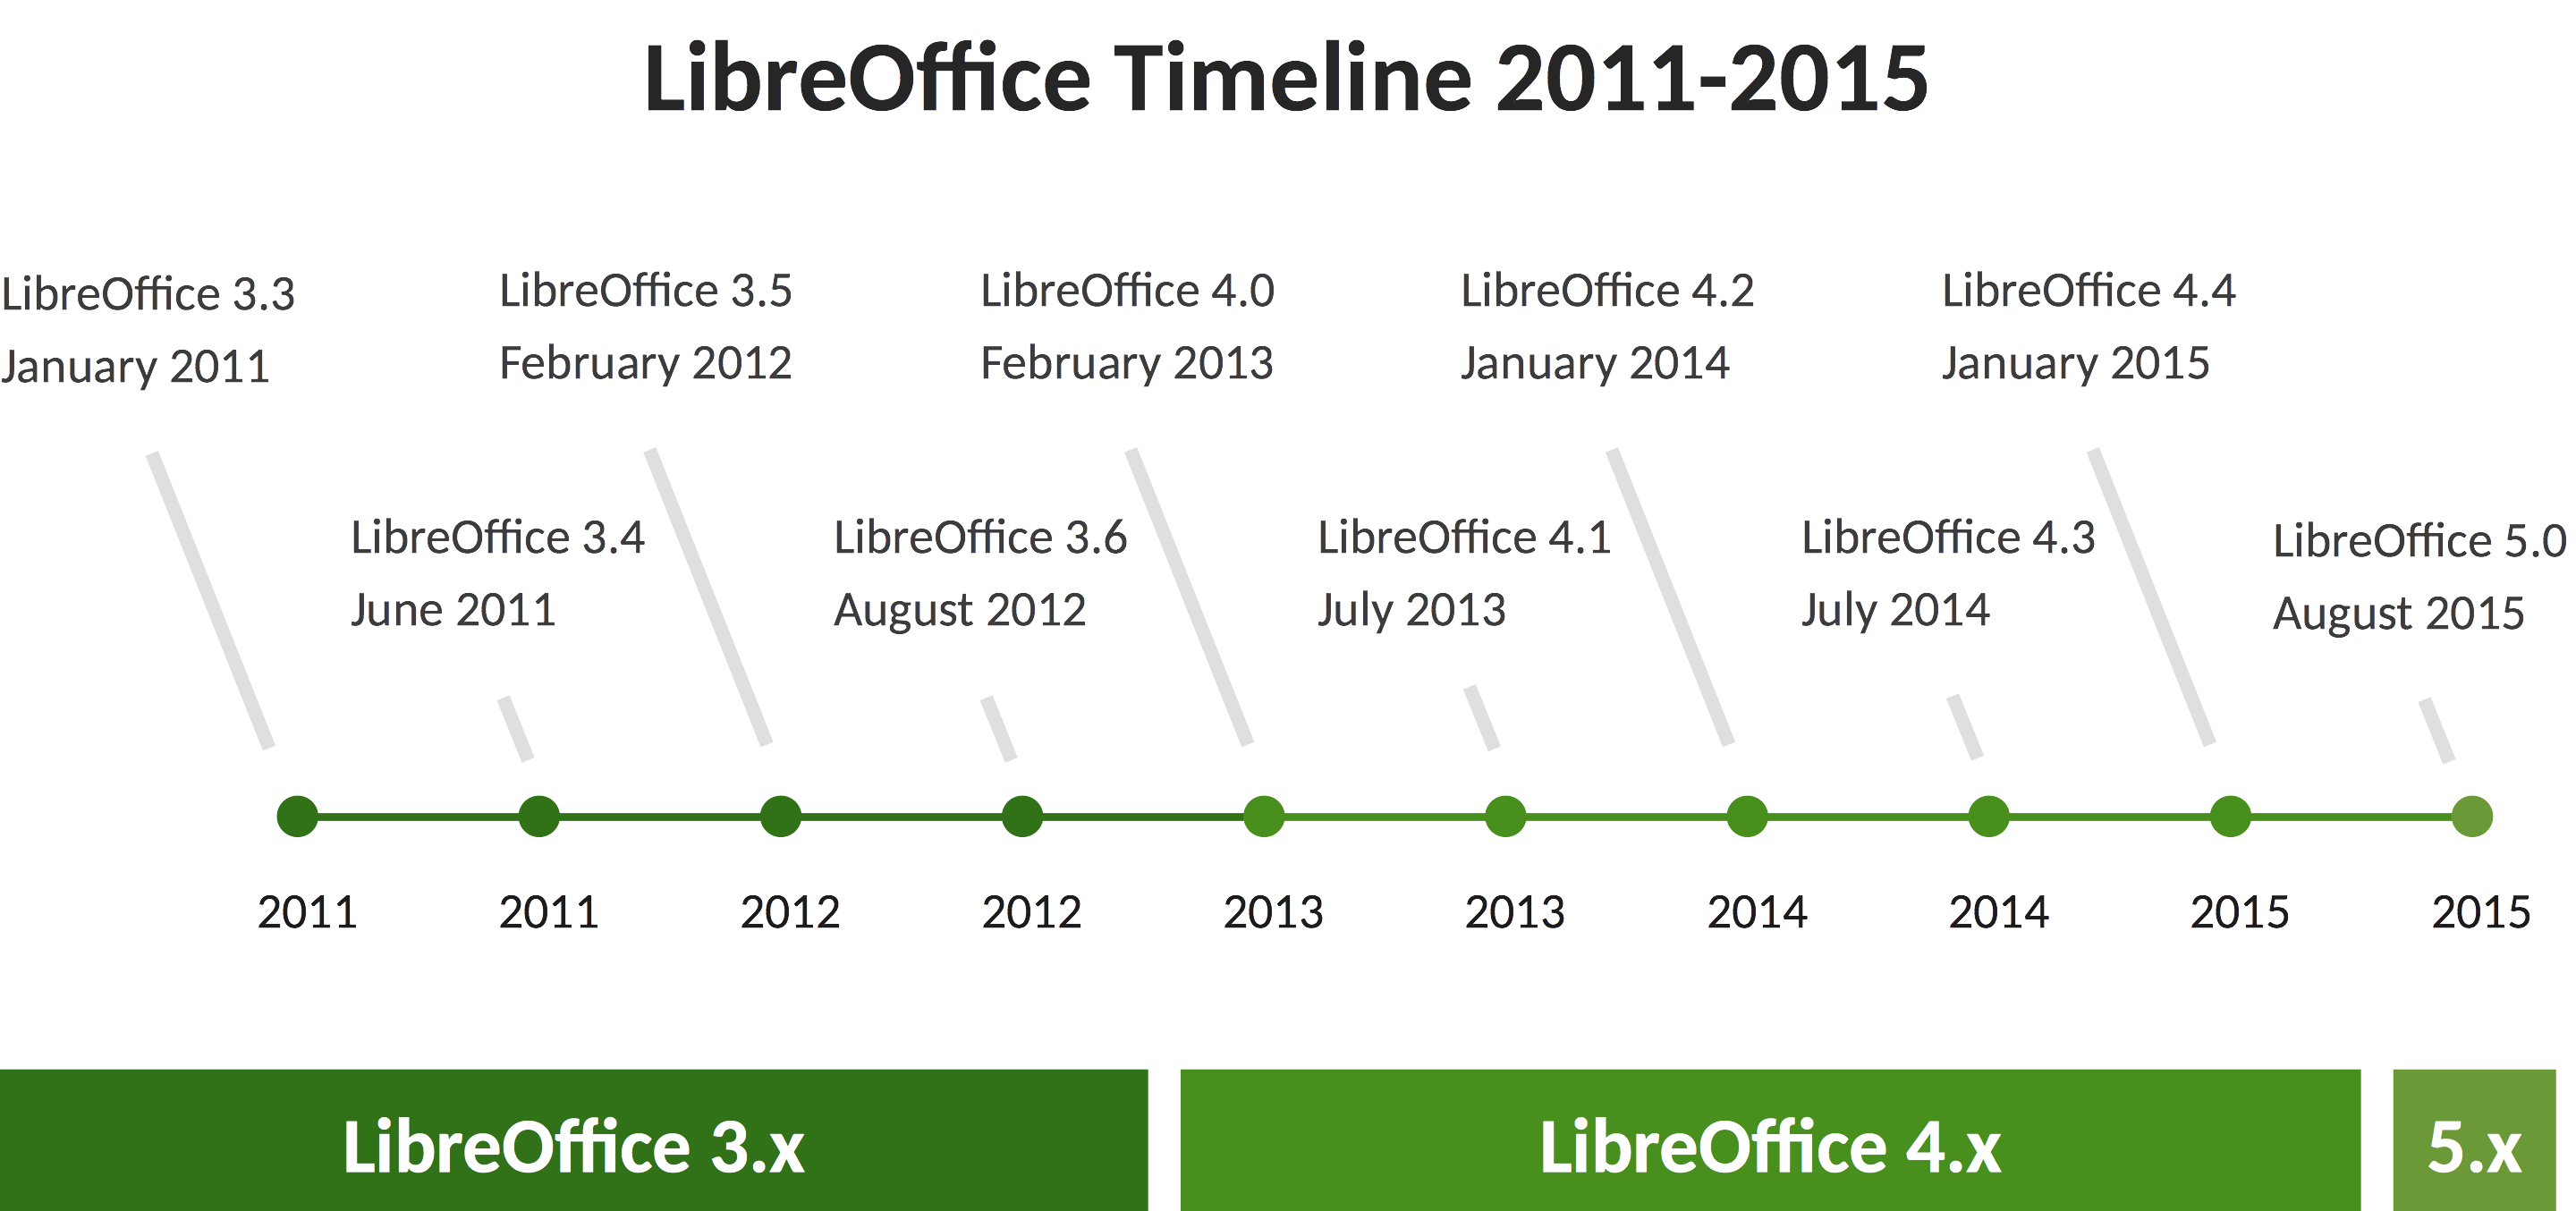 LibreOffice 5.0 is expected soon in openSUSE Tumbleweed.